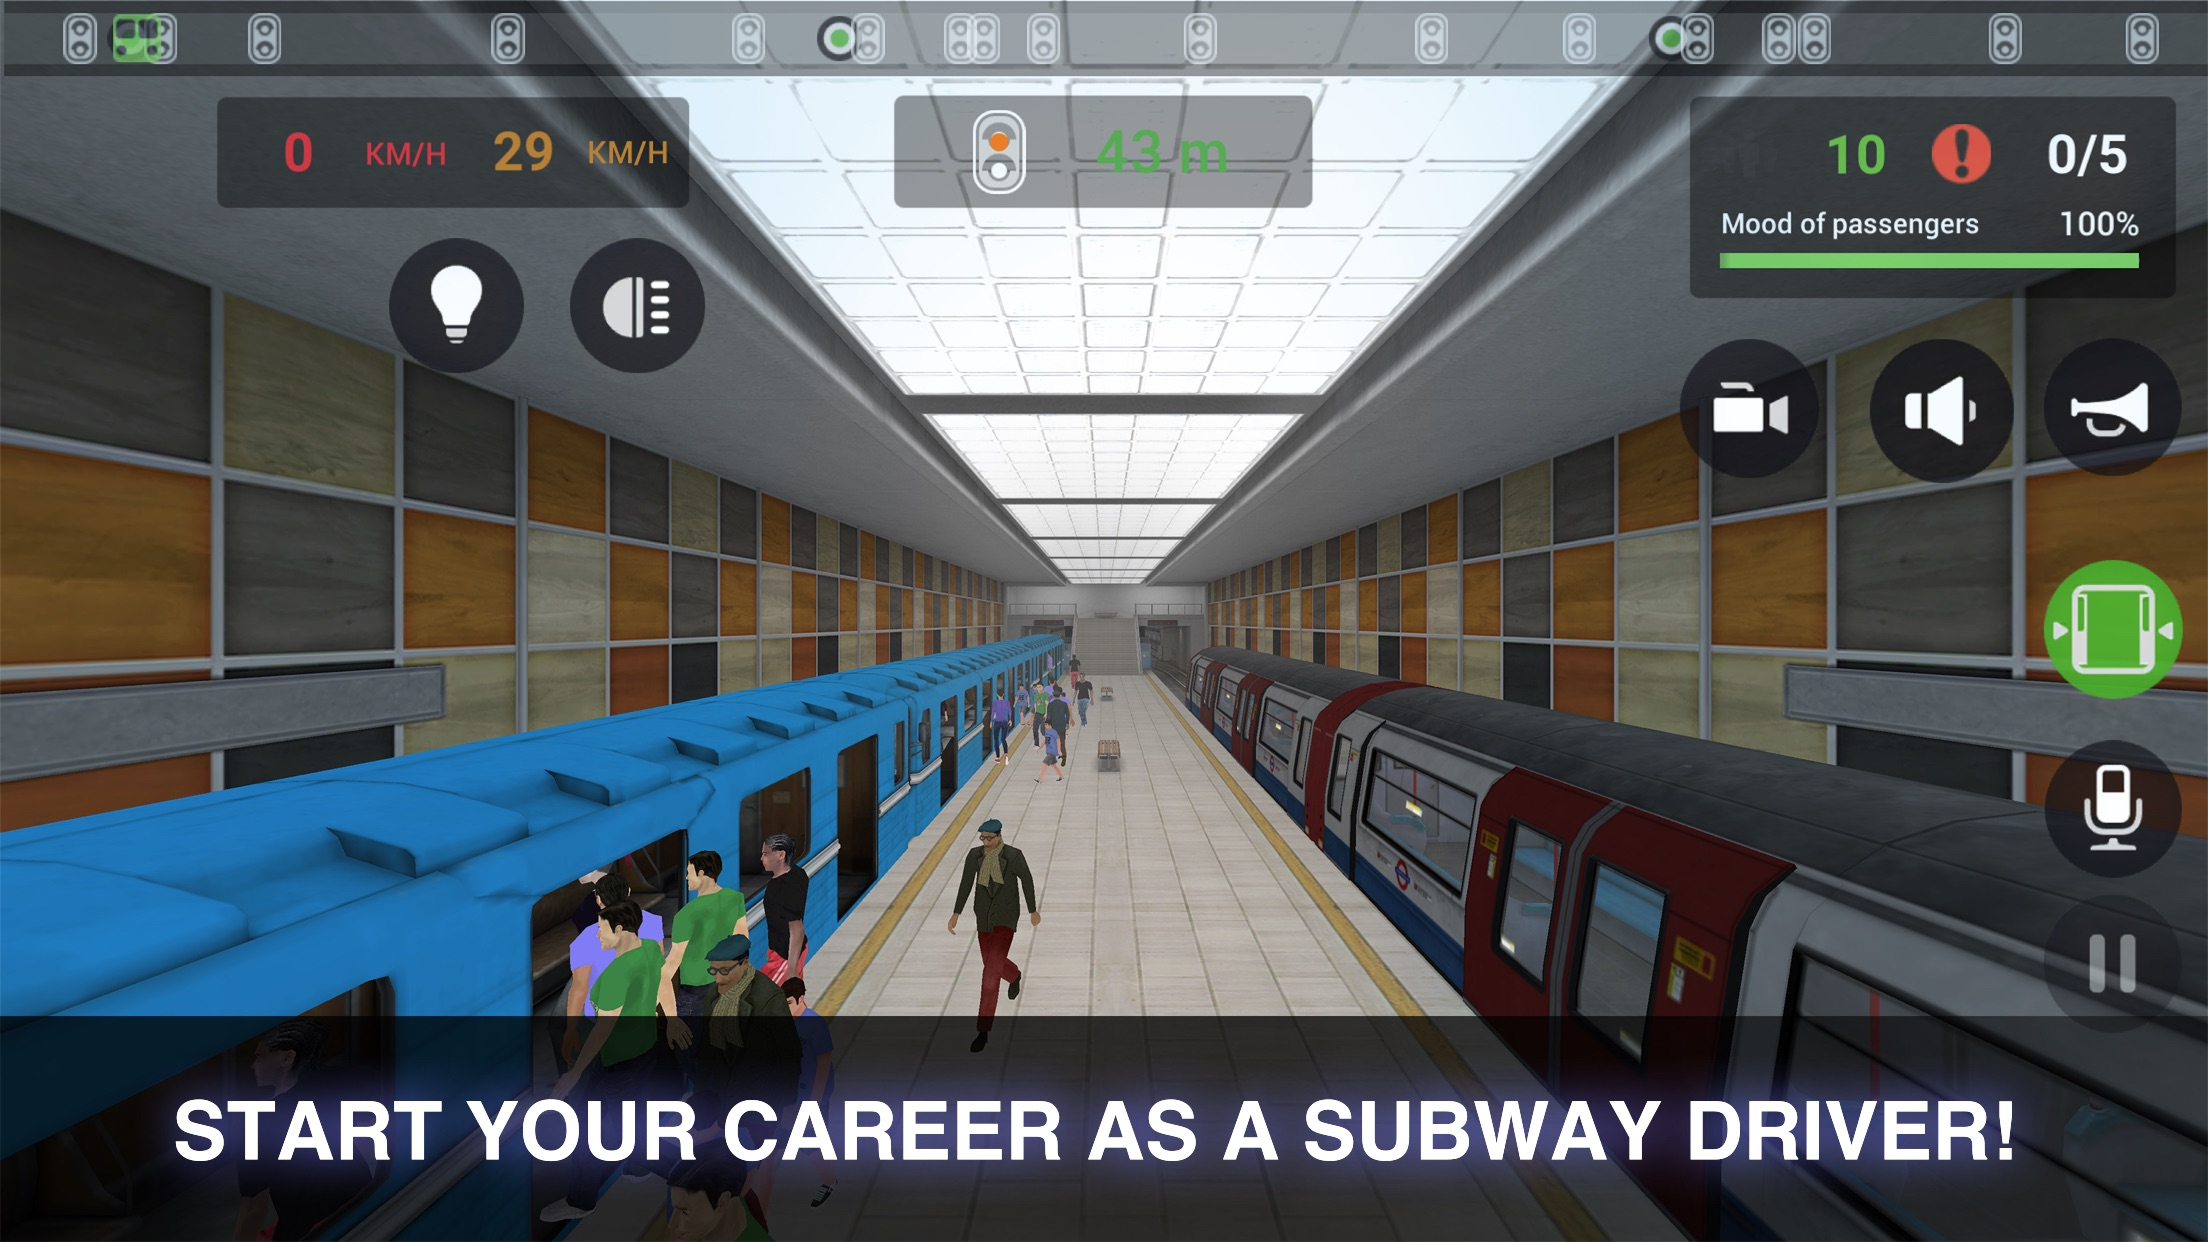 Subway Simulator 3D Screenshot